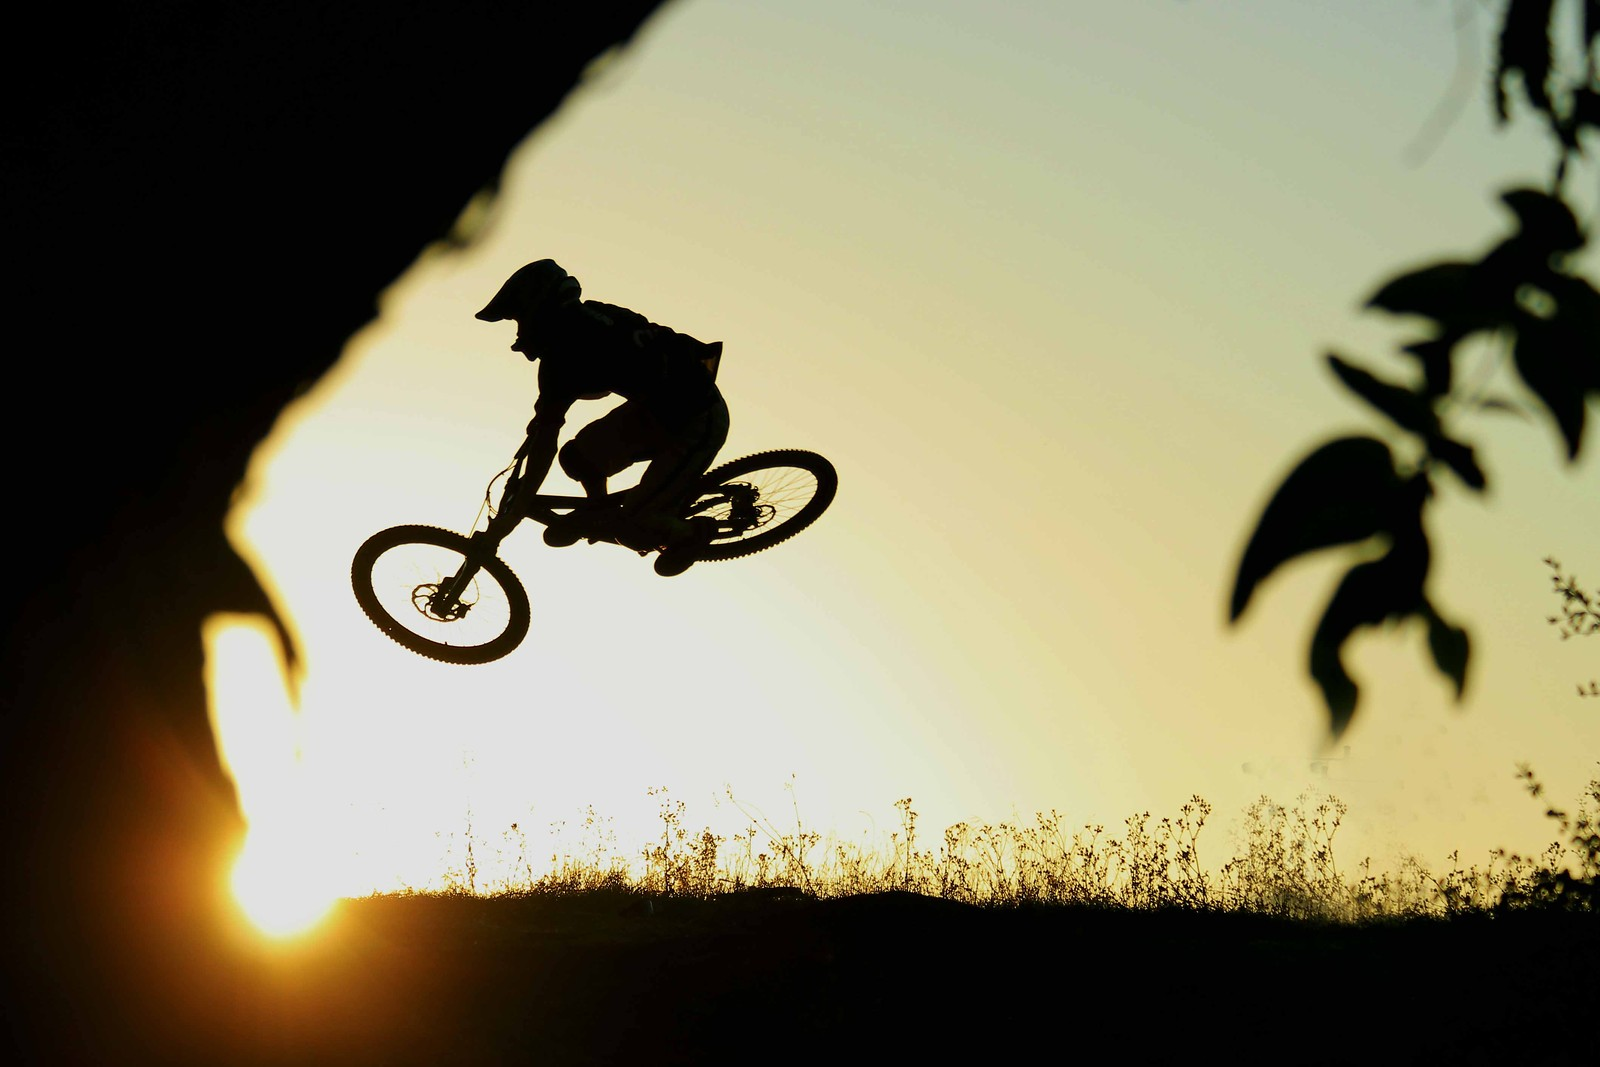 Vance hits the hip  - GnarHuck - Mountain Biking Pictures - Vital MTB